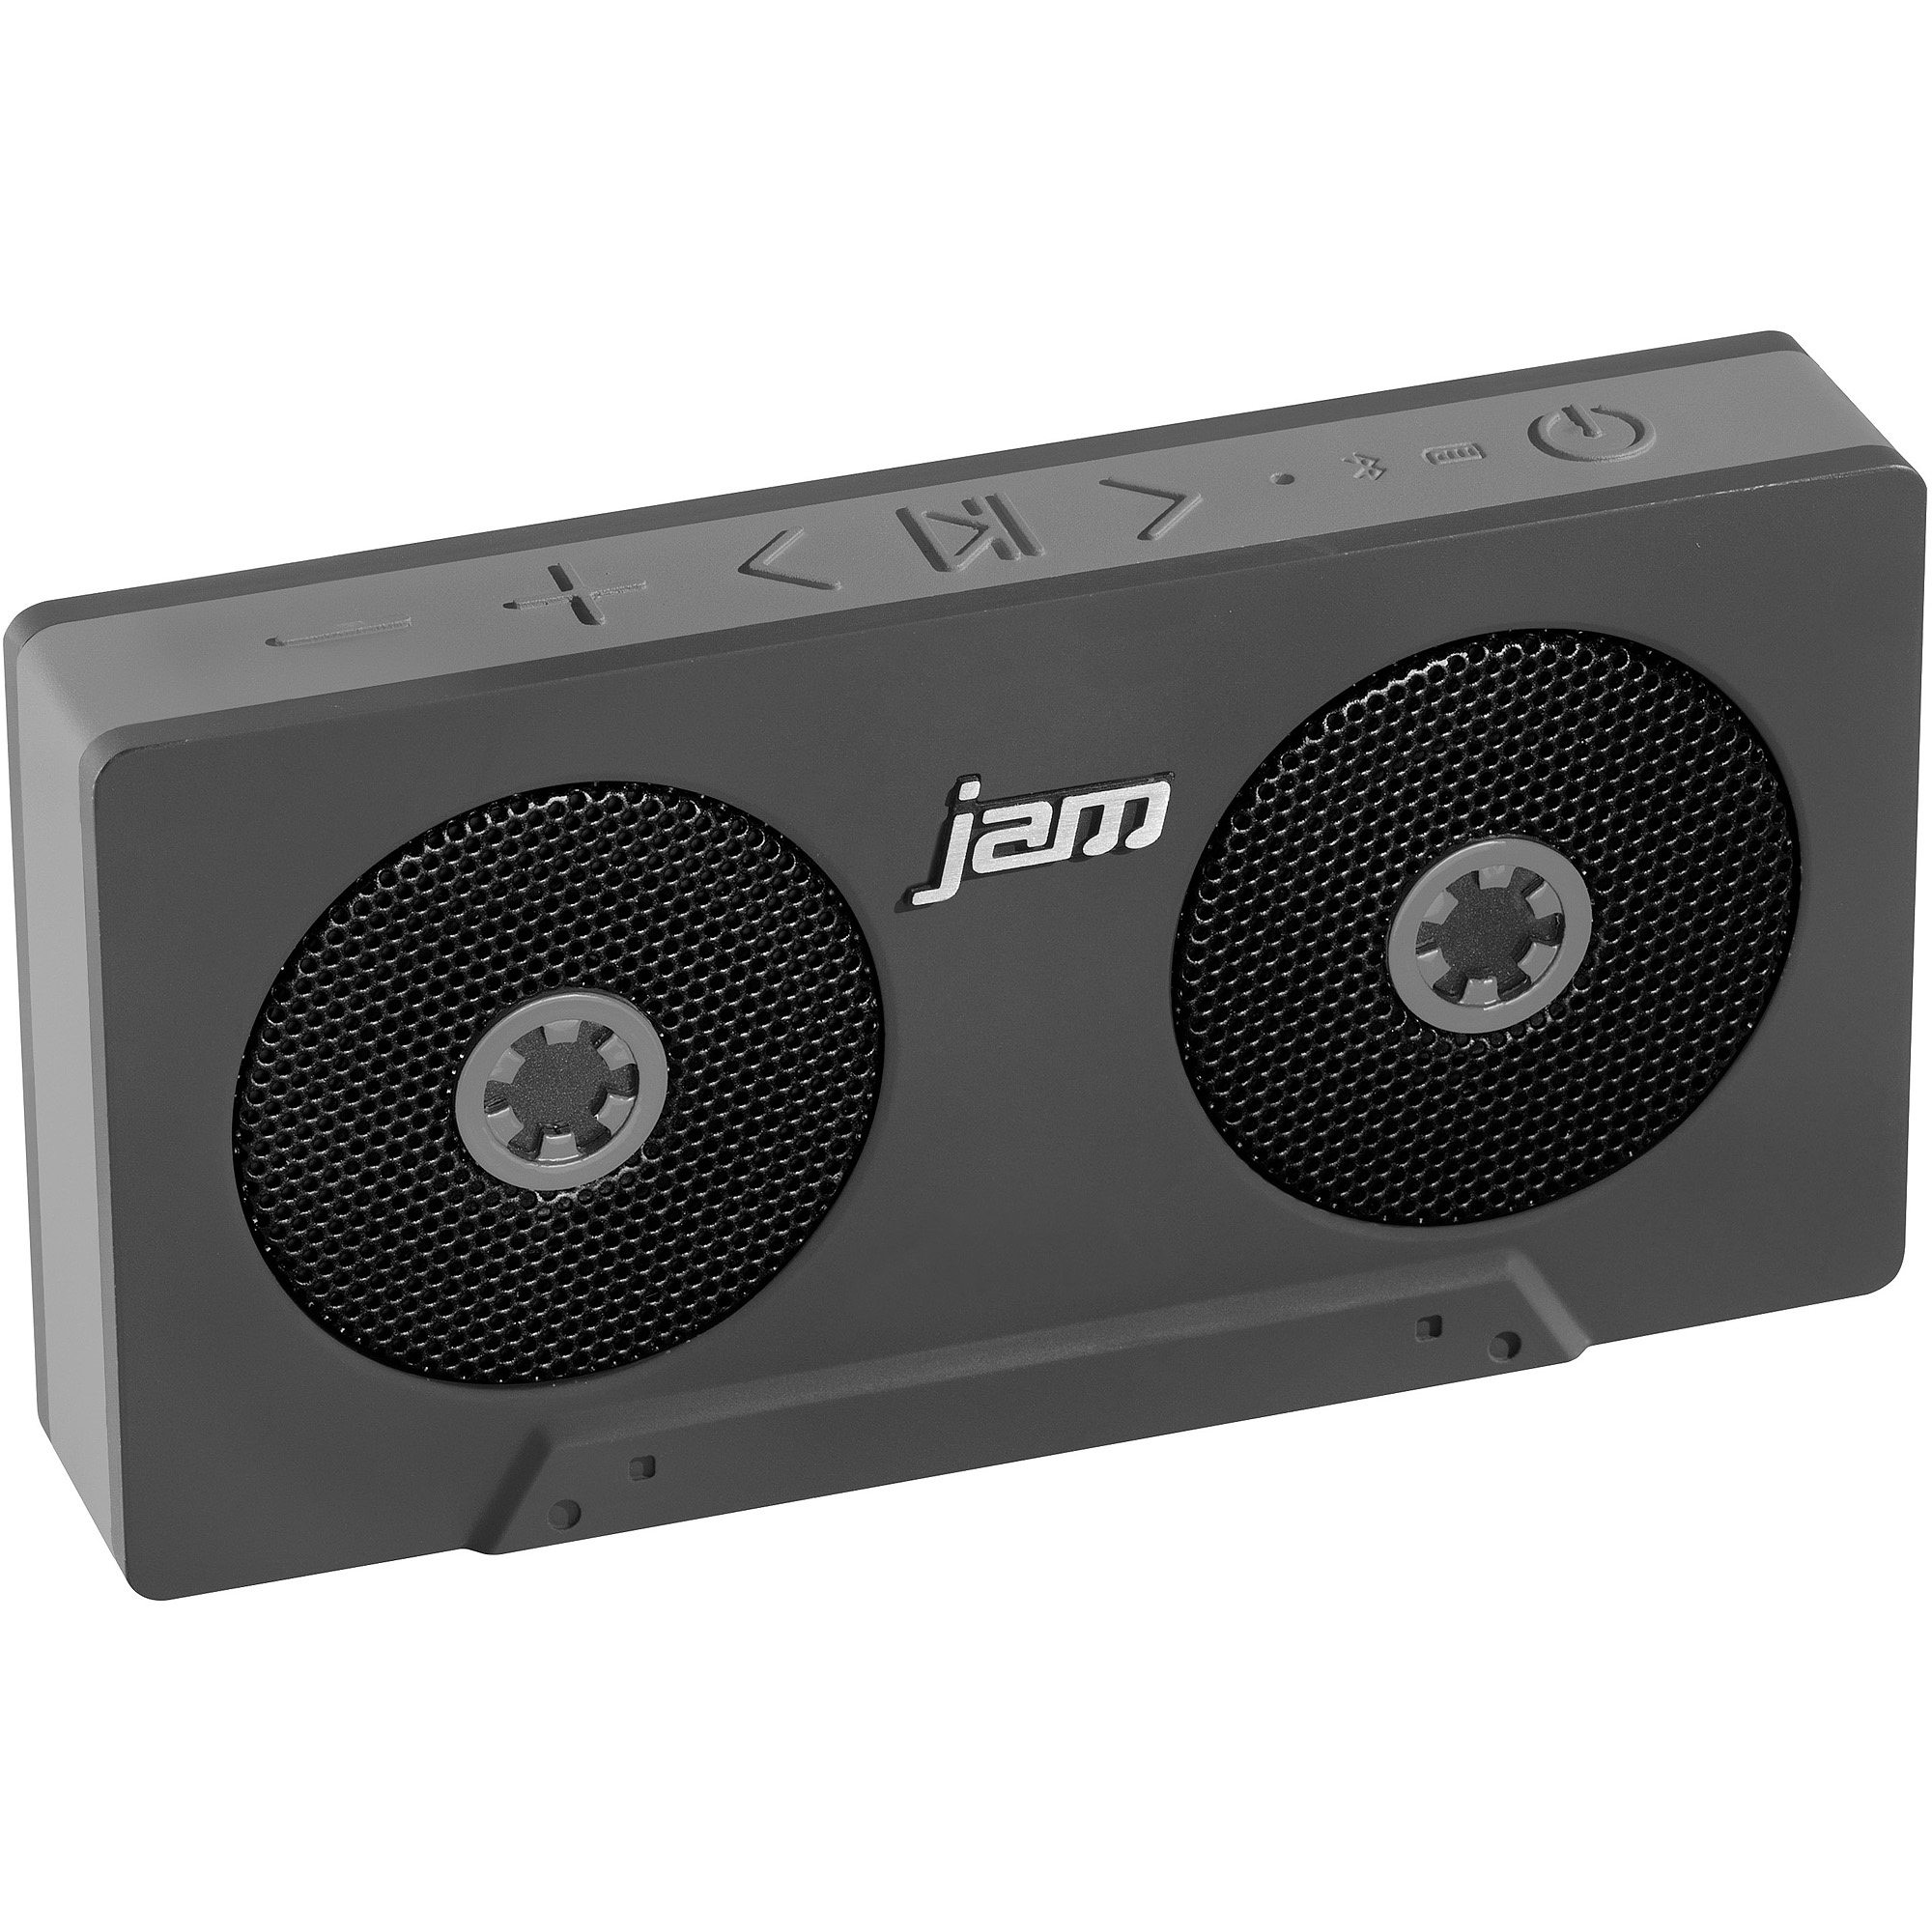 Jam Rewind Wireless Pocket Speaker